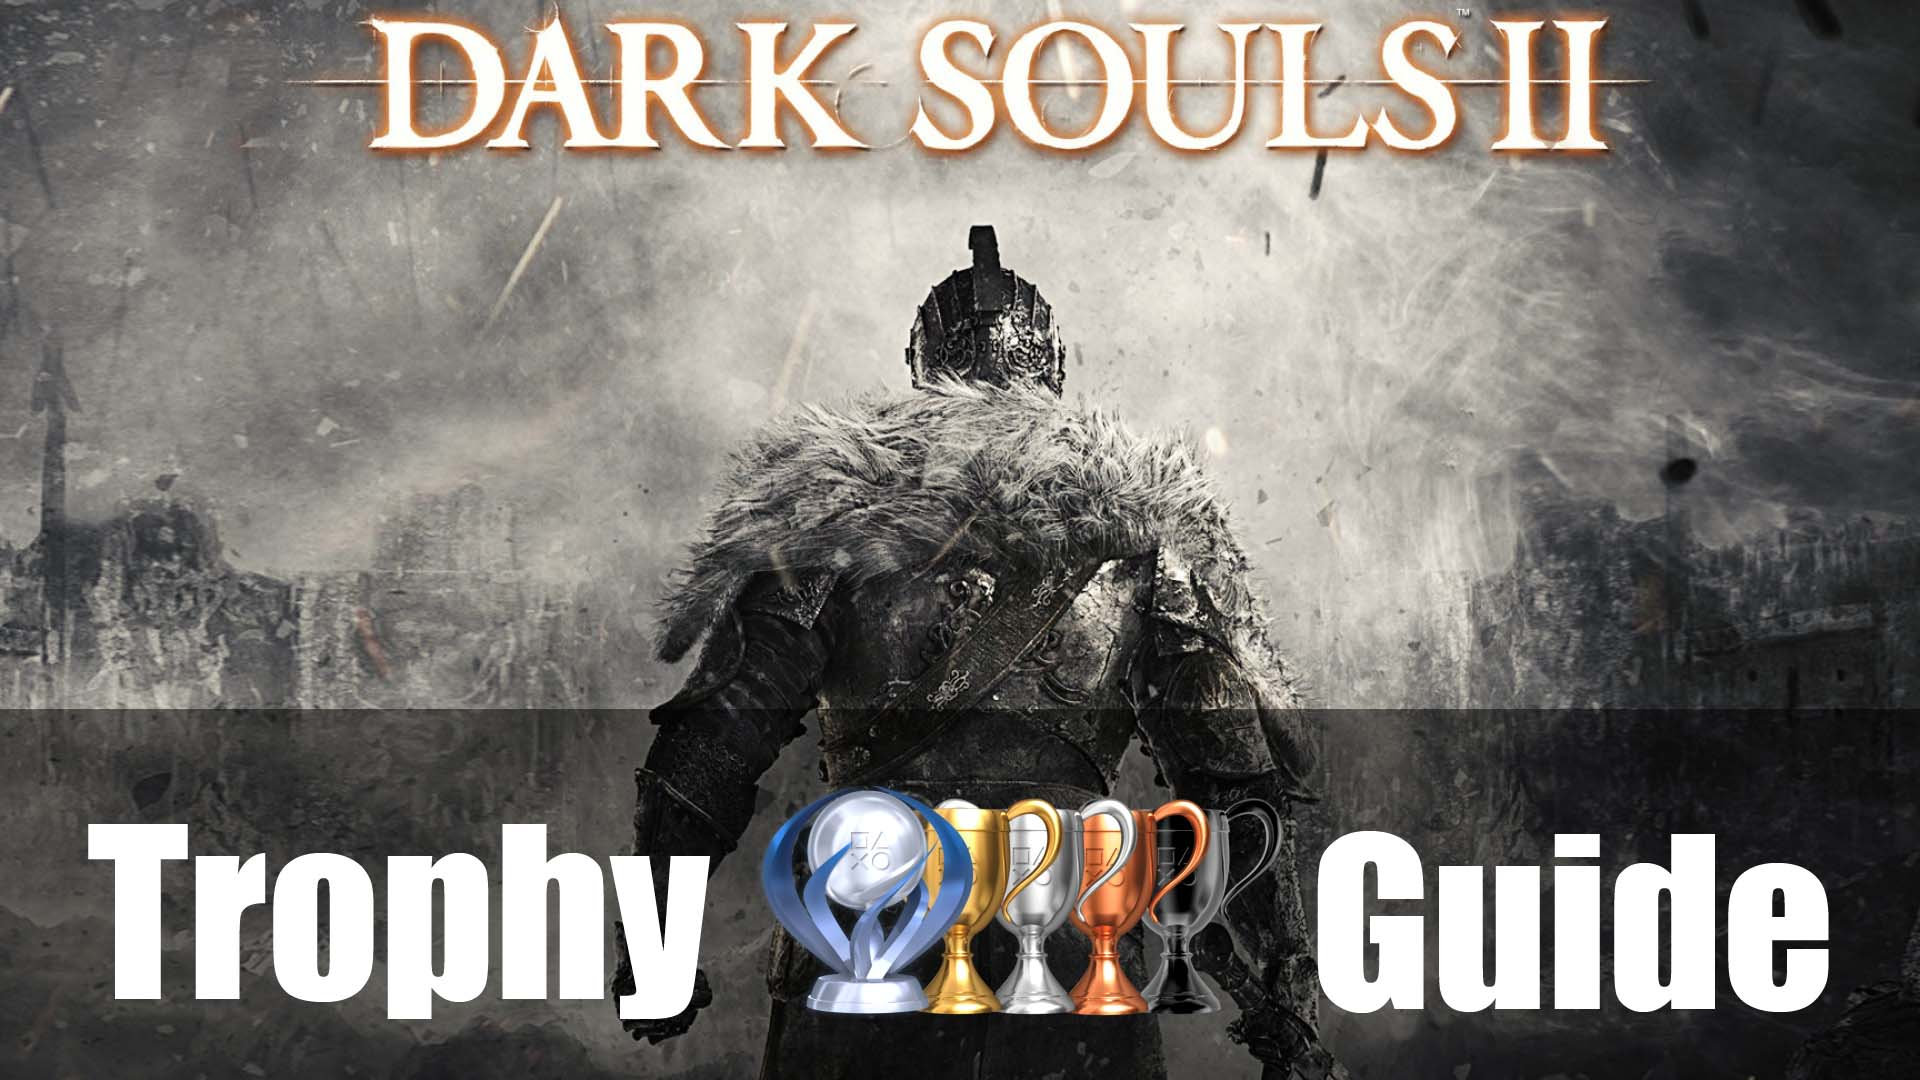 Dark Souls 2 Trophy Guide & Roadmap | Fextralife on map of forza horizon 2, map of tales of xillia 2, map of silent hill 2, map of gta v, map of dead island riptide, map of saints row 2, map of just cause 2, map of nintendo land, map of far cry 3, map of dead rising 2, map of arma 3, map of sleeping dogs, map of tomb raider, demon's souls 2, map of five nights at freddy's 2, map of borderlands 2, map of the witcher 2, map of grand theft auto v, map of skylanders giants, map of demon's souls,